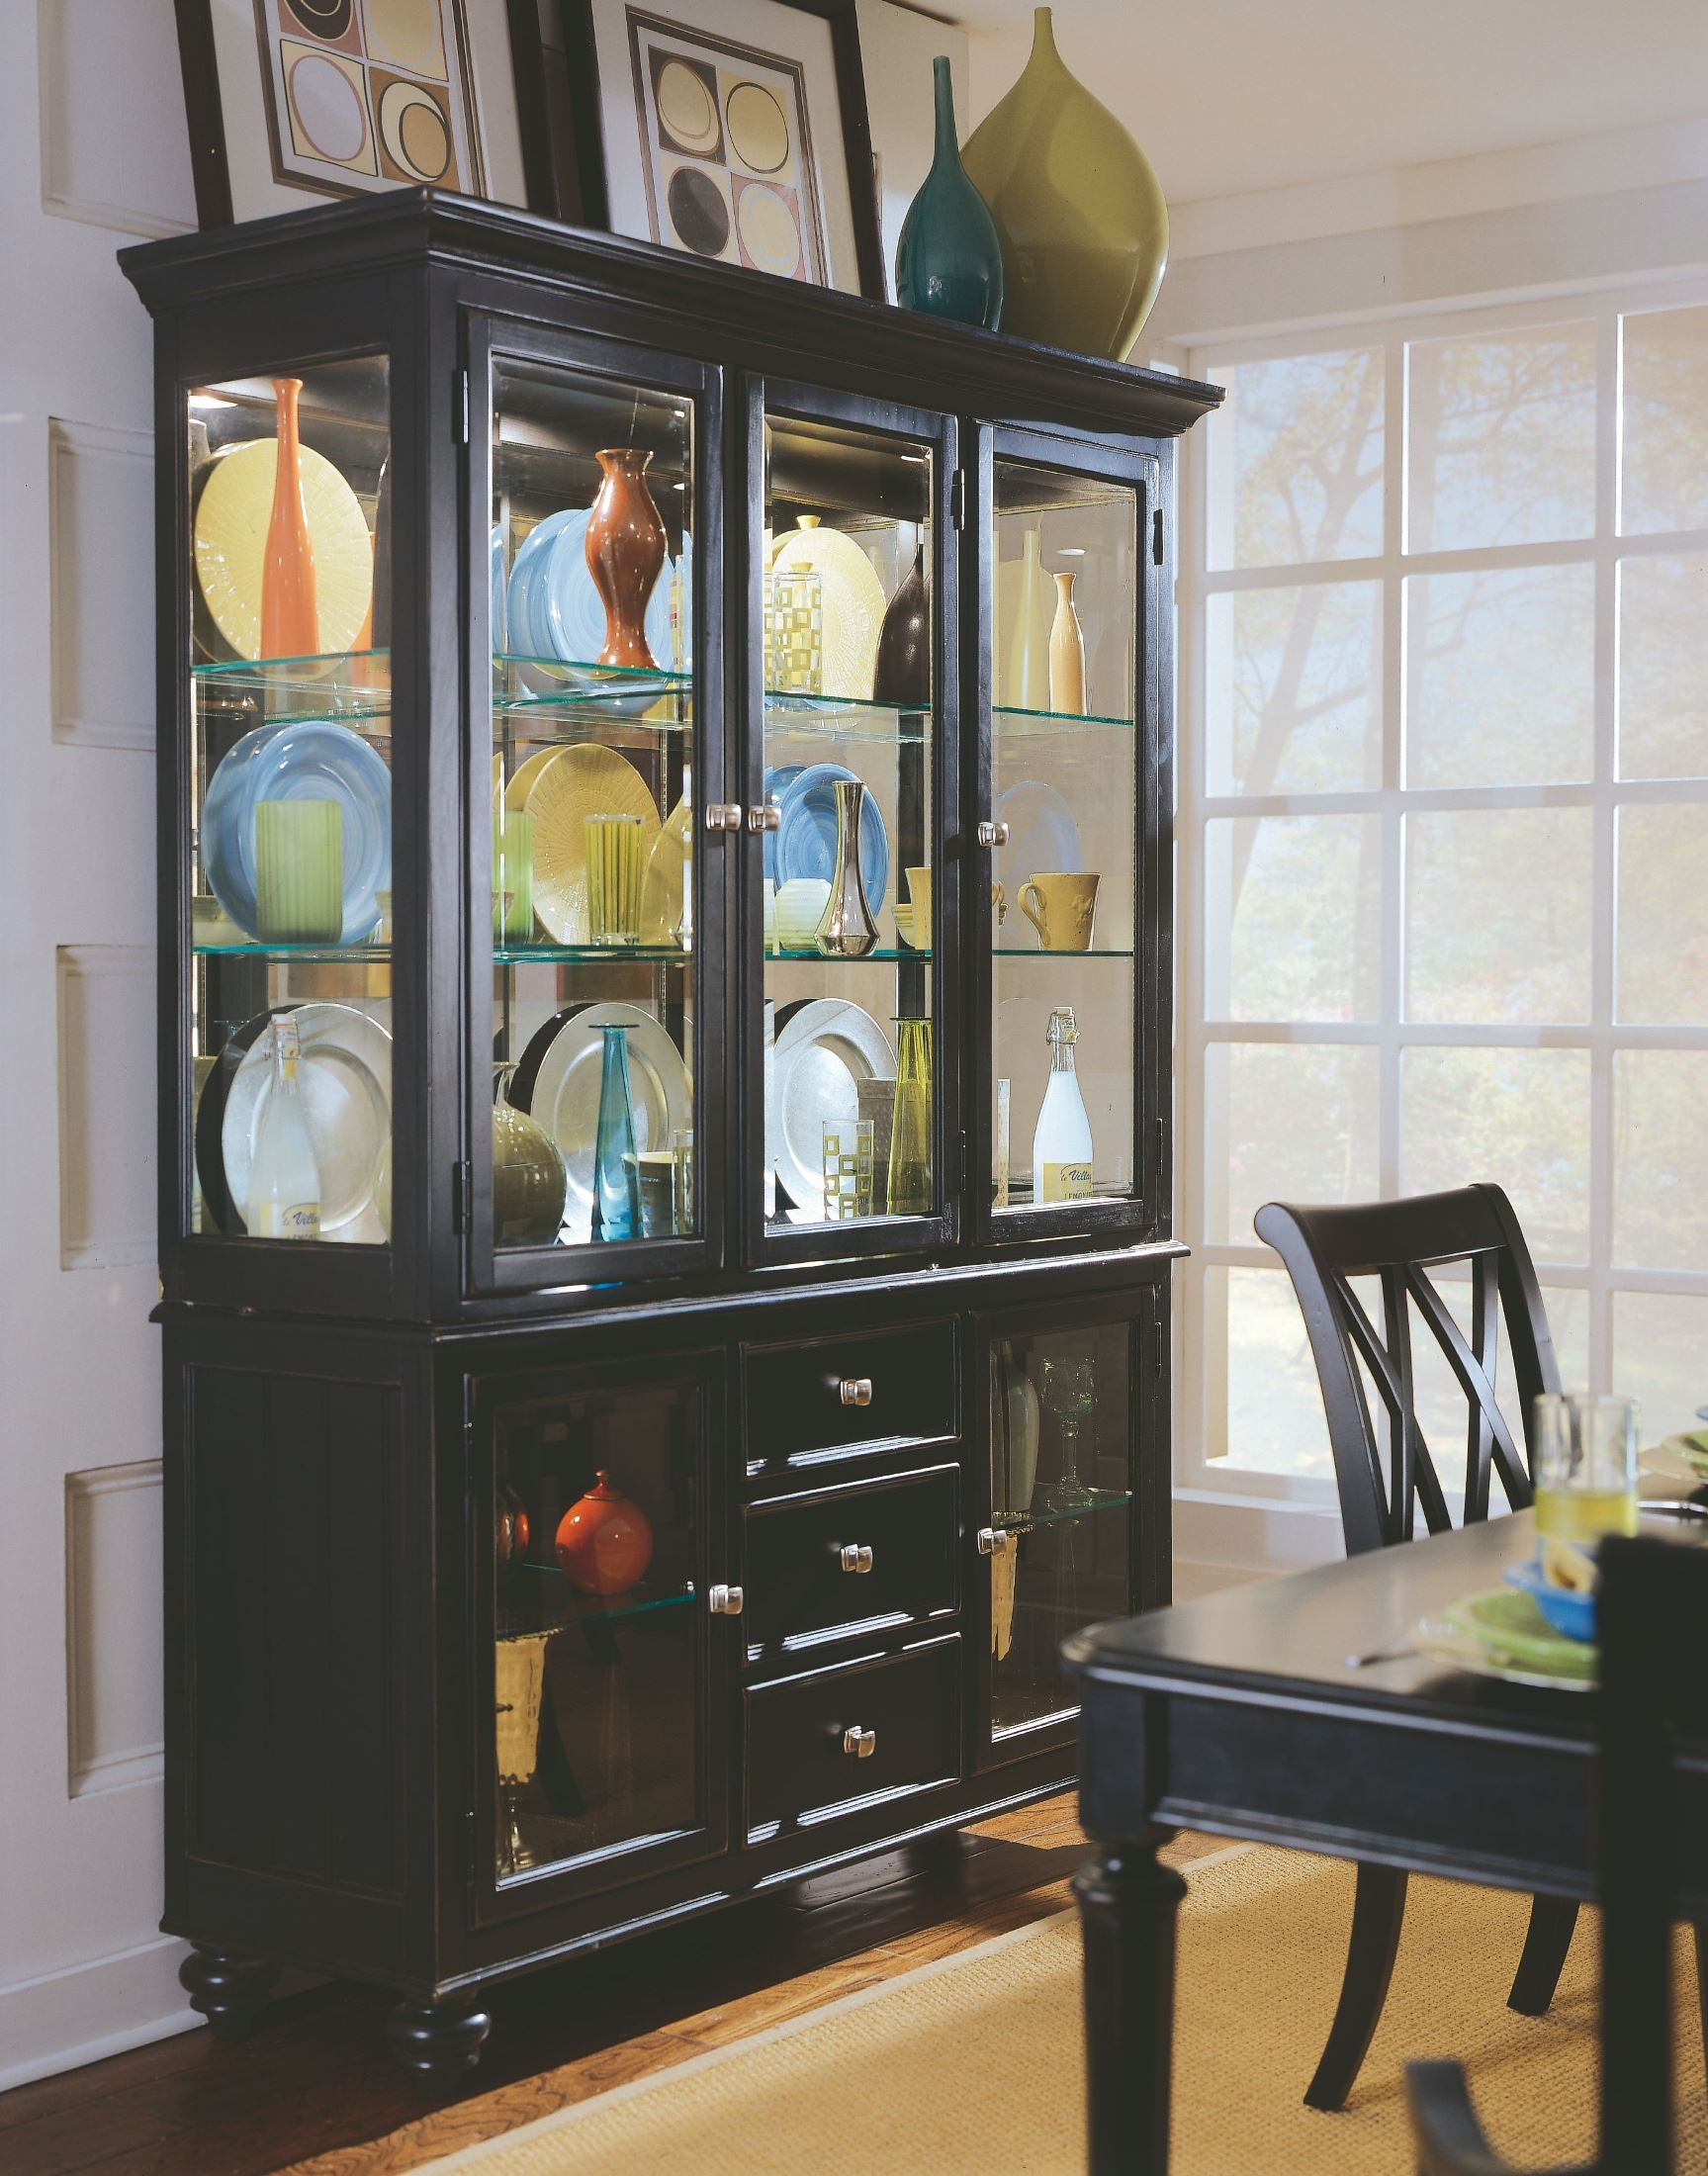 Camden Black China Cabinet From American Drew 919 830R